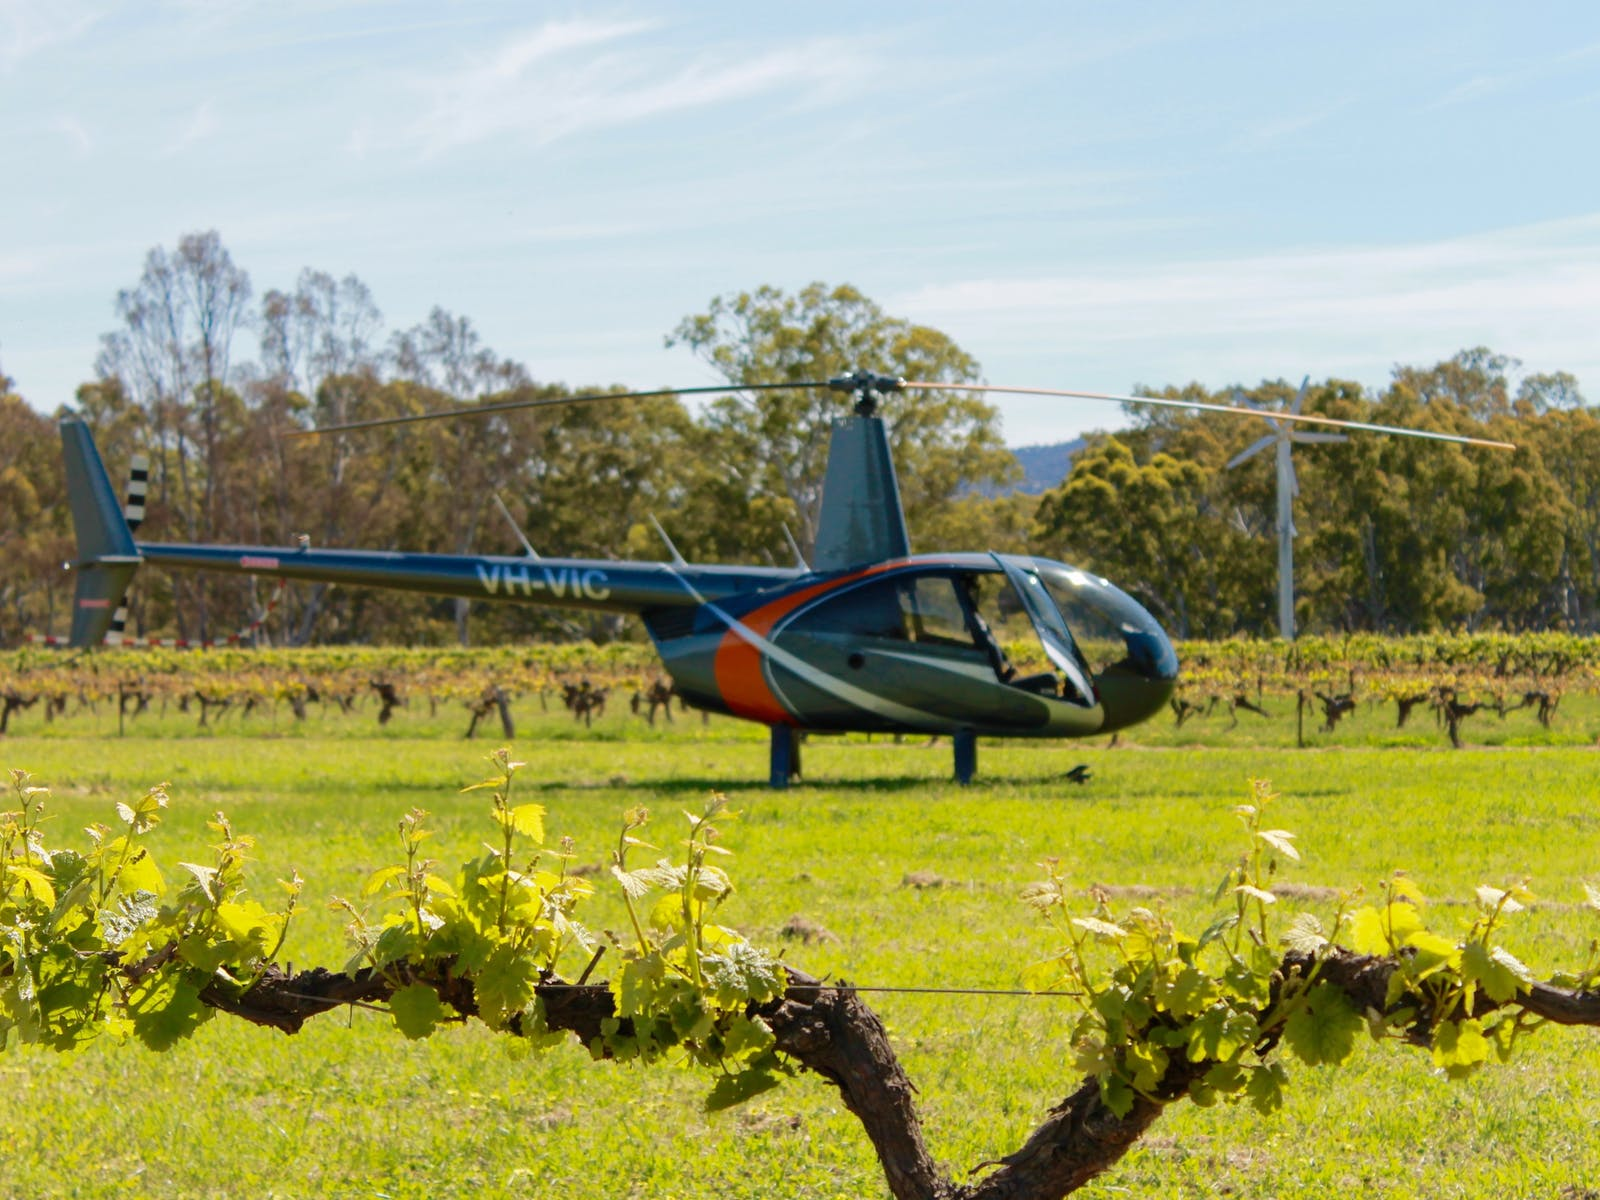 Landing between the vines